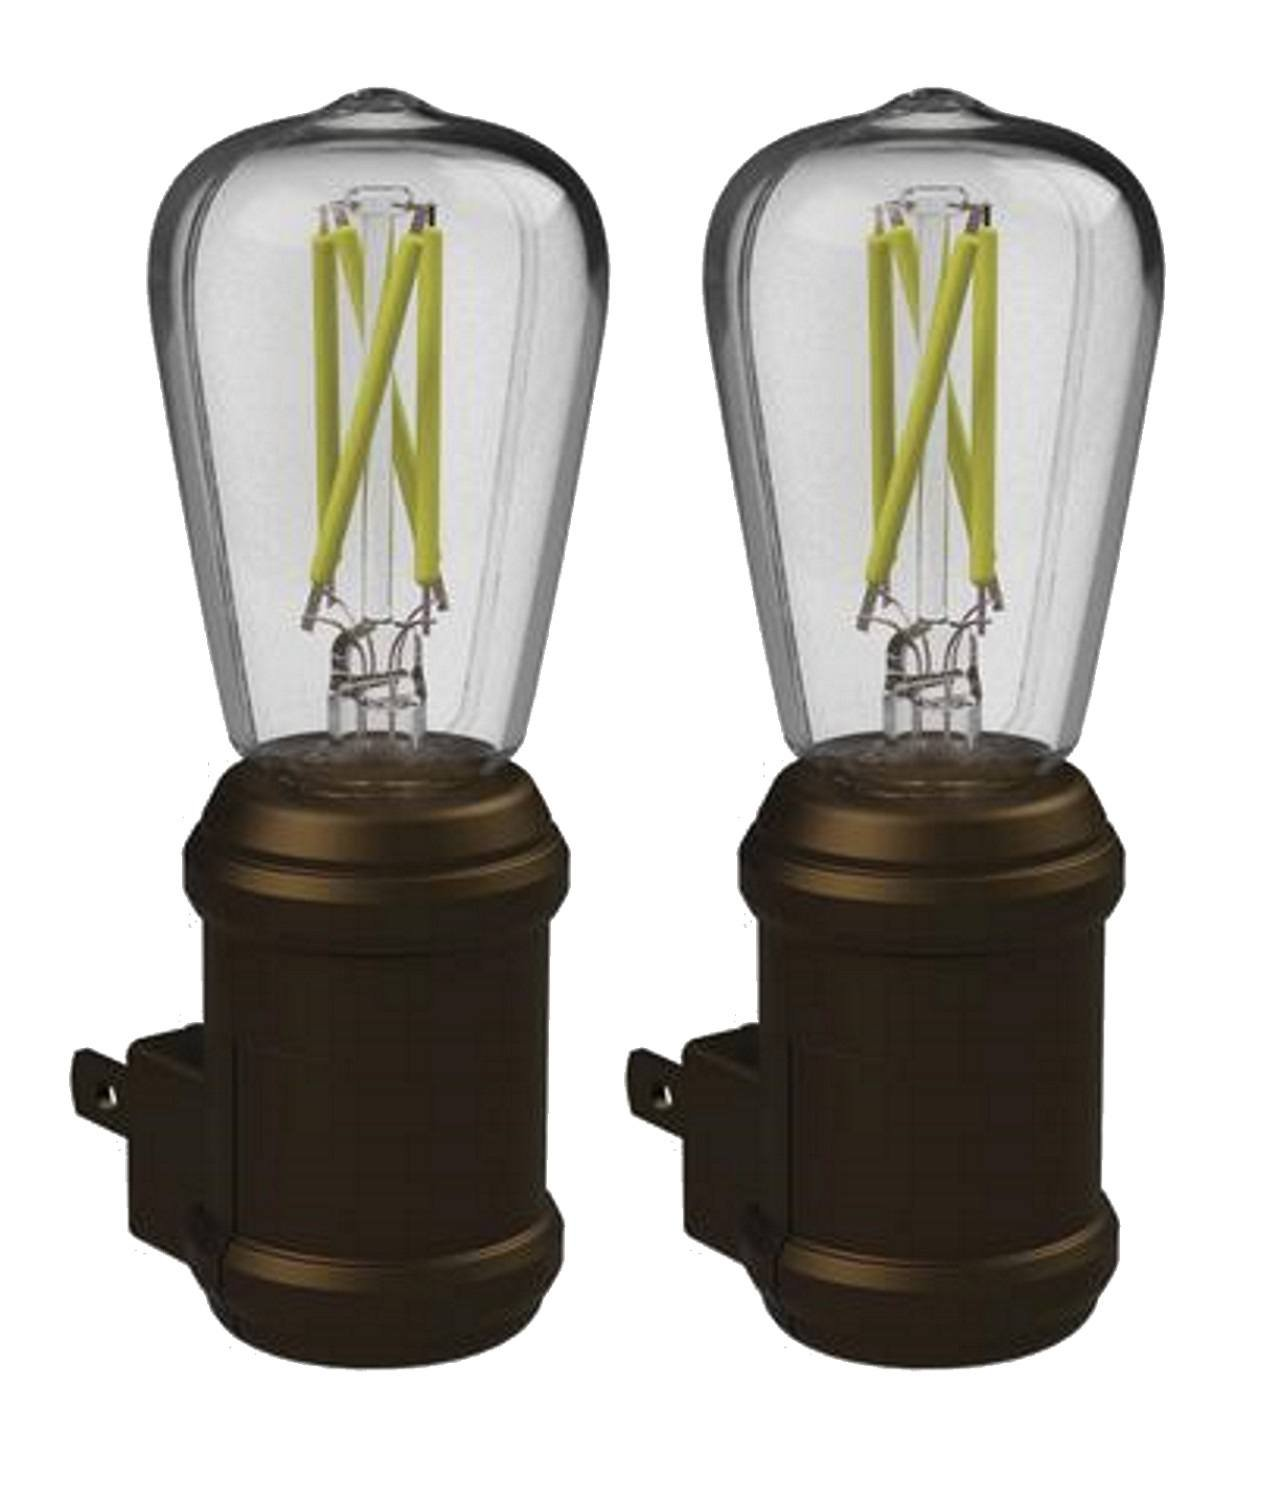 Westek Vintage LED Bulb Night Light - Pack of 2 Edison Filament Old-Fashioned Design Nightlights - Auto Dusk-Dawn Sensor, Outlet Plug-in, Energy Efficient, 25,000 Hours, 8 Lumens – Aged Bronze Finish